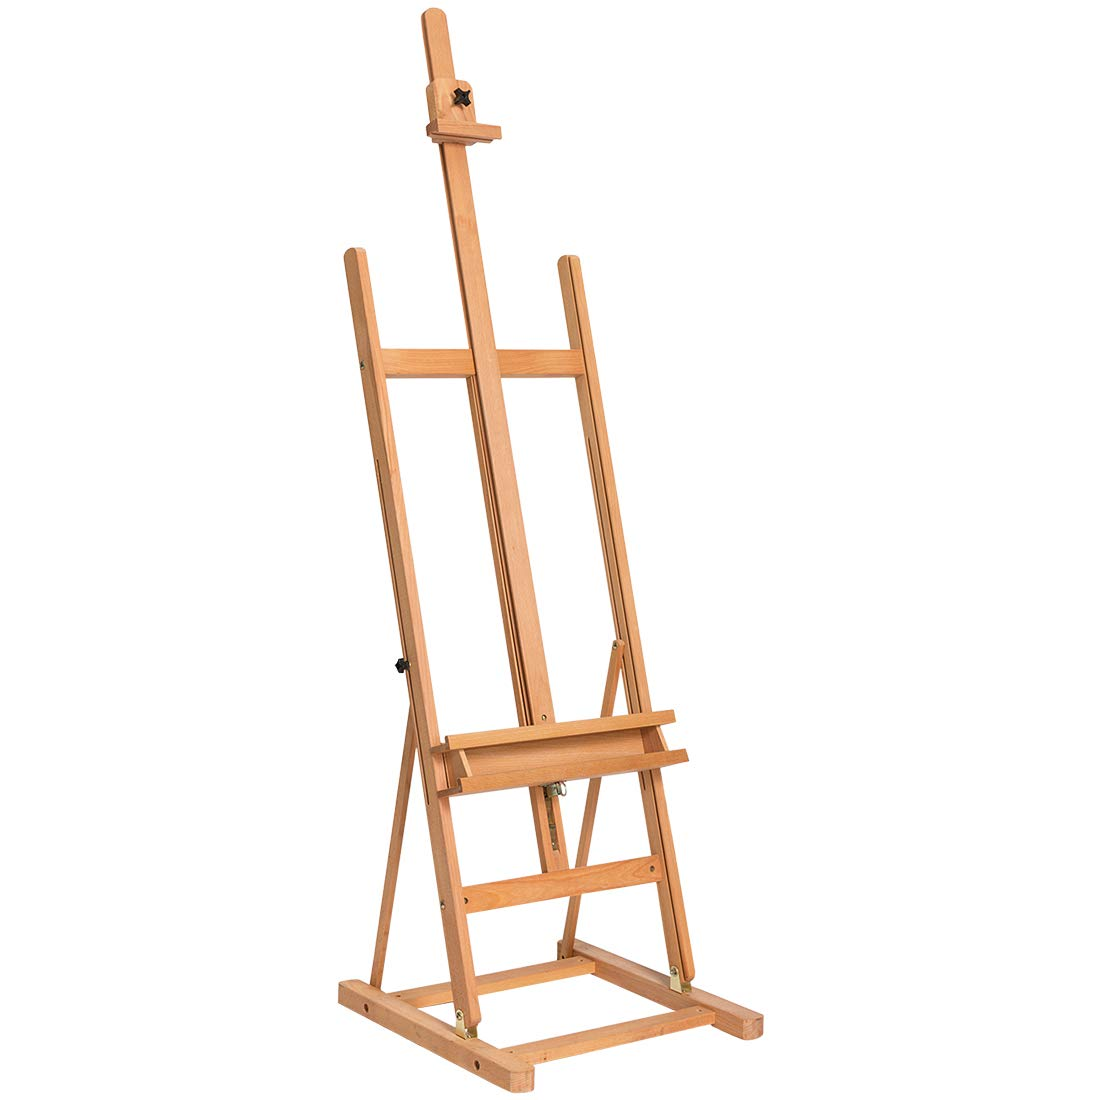 Marble Field Multi-Function H-Frame Artist Easel, Floor Easel, Adjustable Canvas Tray Height Beech Natural